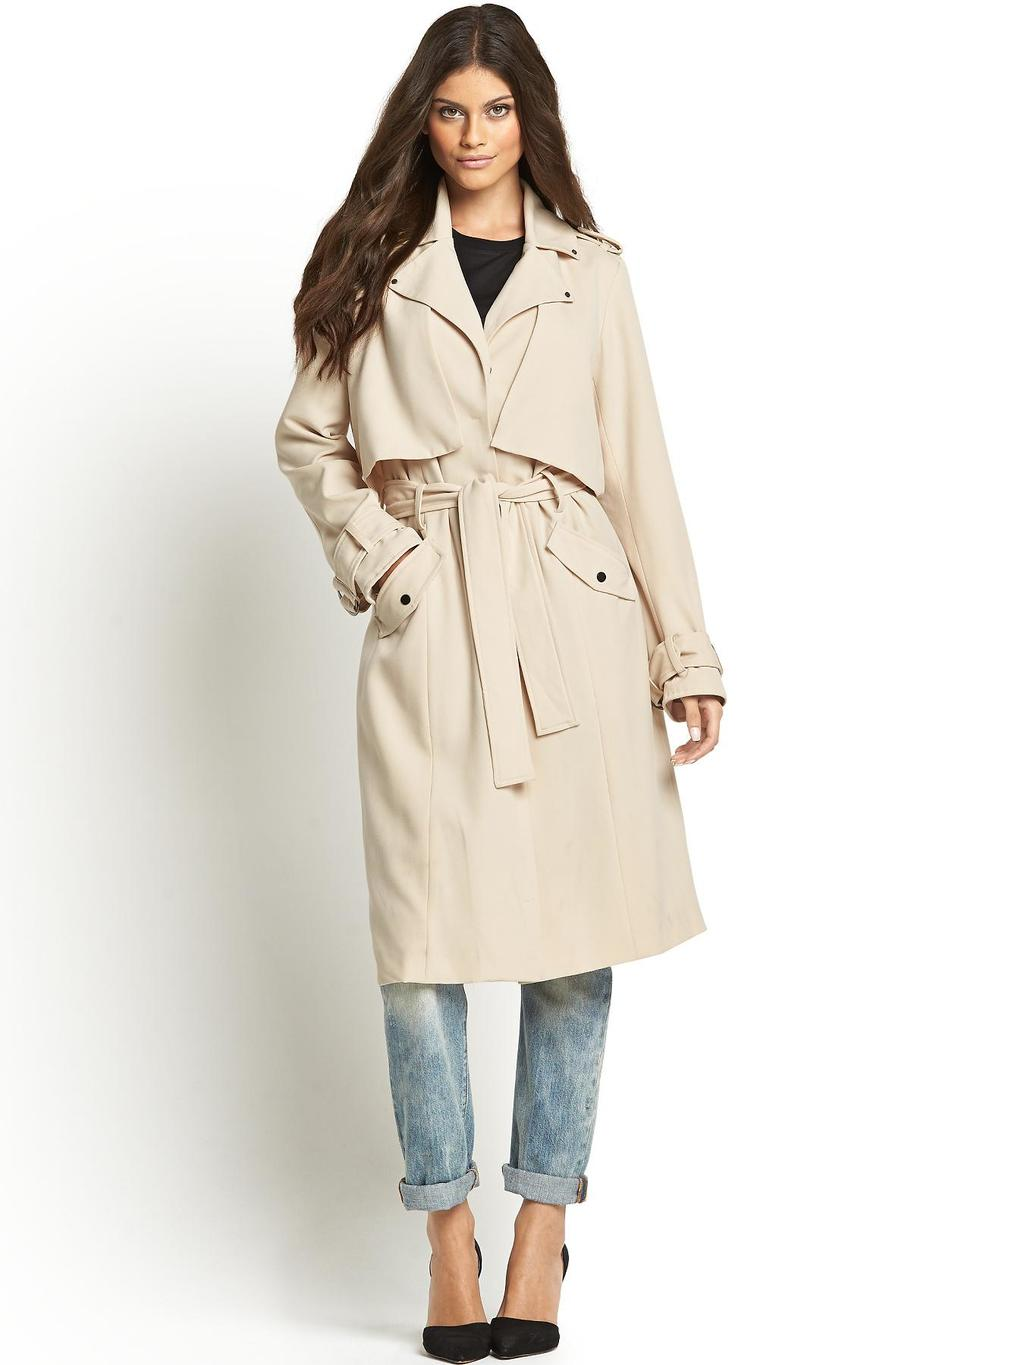 Finery Trench Coat - pattern: plain; style: trench coat; collar: standard lapel/rever collar; predominant colour: ivory/cream; occasions: casual, work, creative work; fit: straight cut (boxy); fibres: polyester/polyamide - mix; length: below the knee; waist detail: belted waist/tie at waist/drawstring; sleeve length: long sleeve; sleeve style: standard; collar break: medium; pattern type: fabric; texture group: woven light midweight; season: s/s 2014